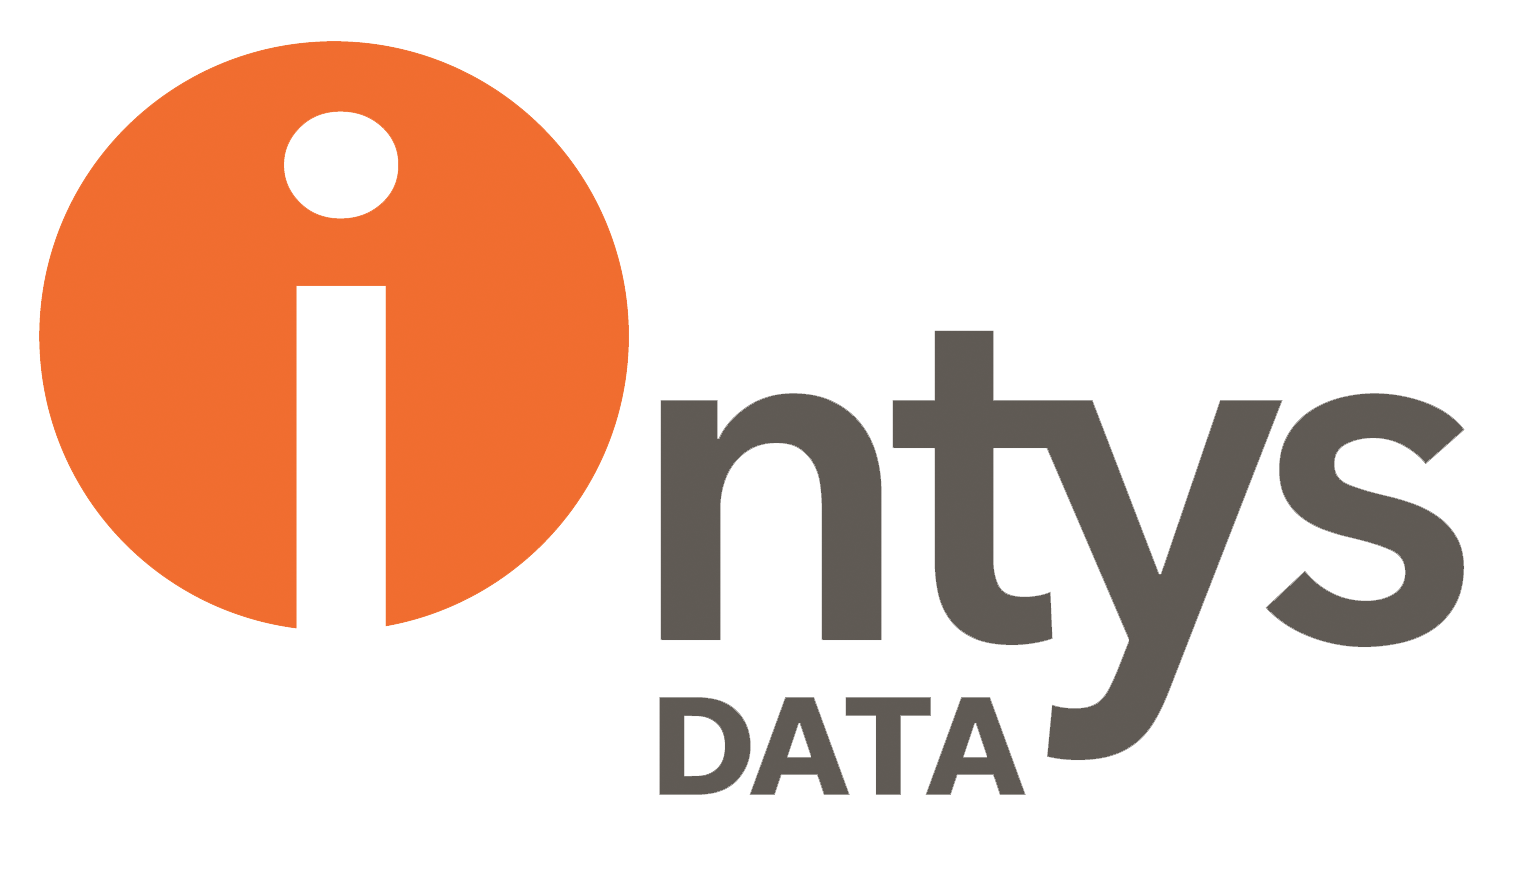 Intys_Data.png